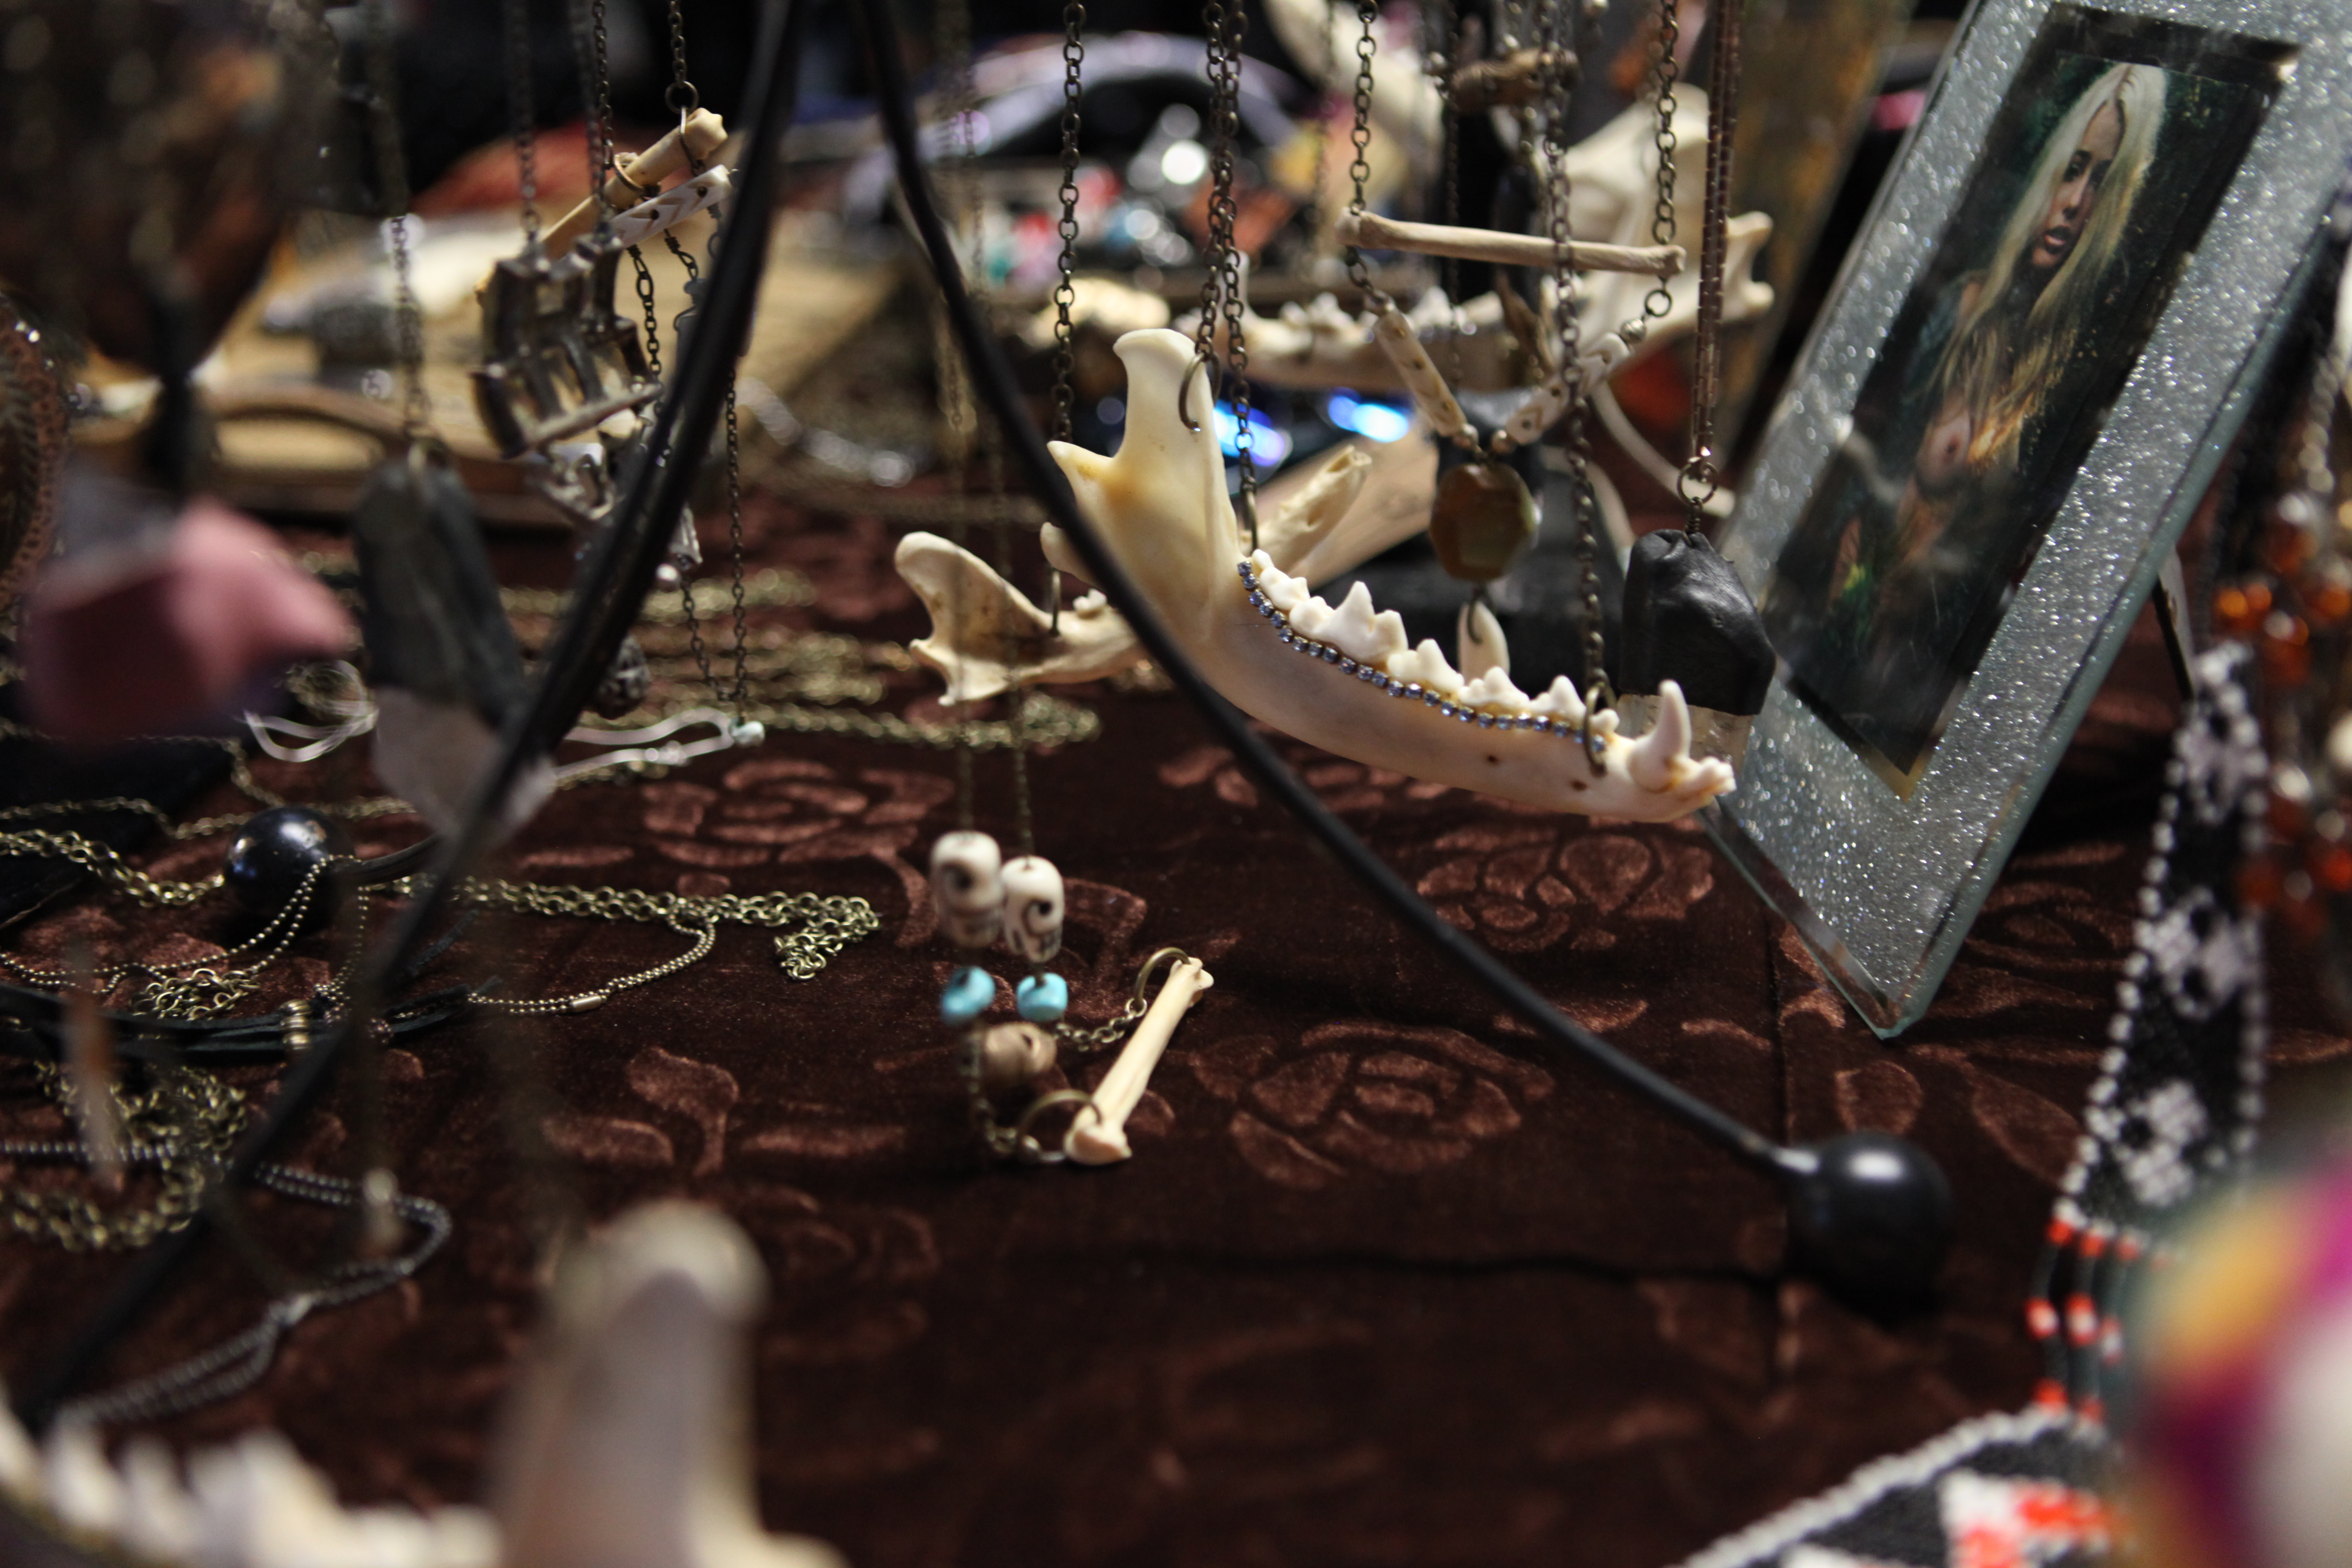 Hand made jerwlery at The Witches Market